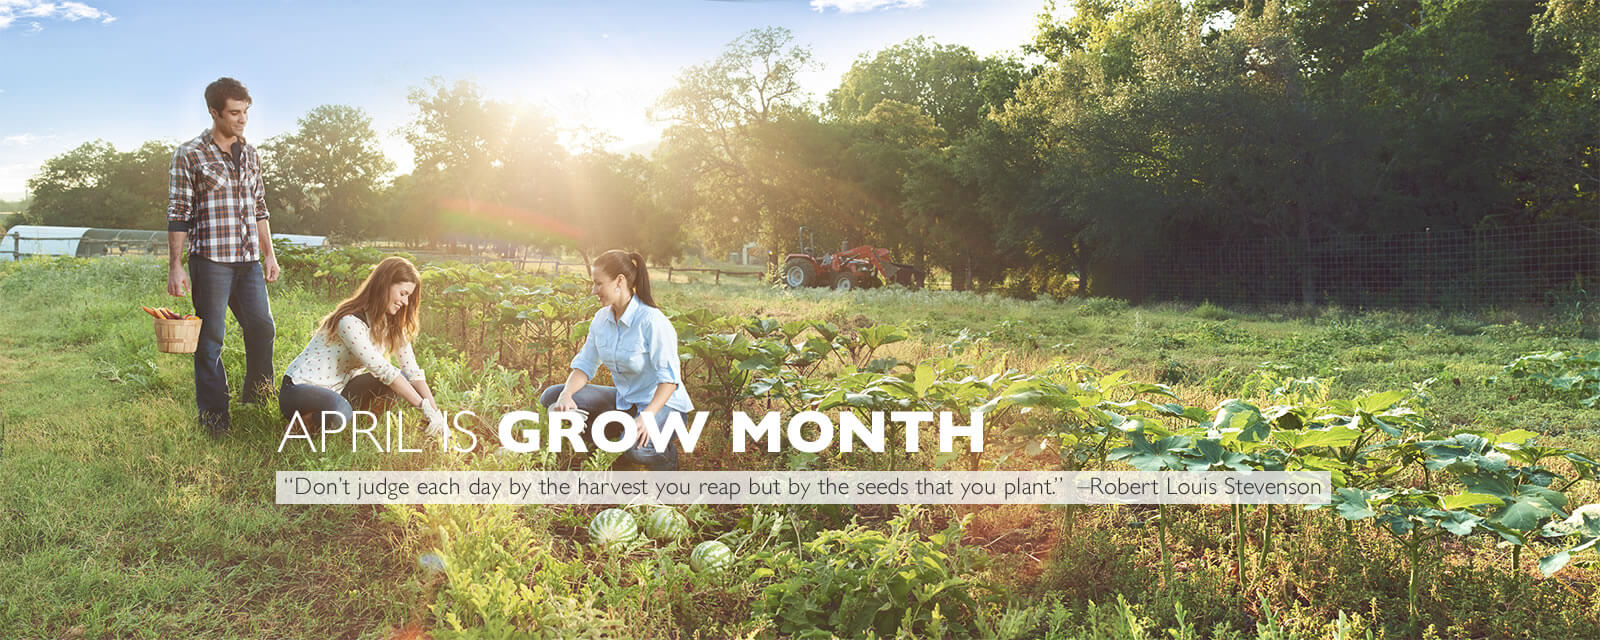 April is Grow month at Travaasa